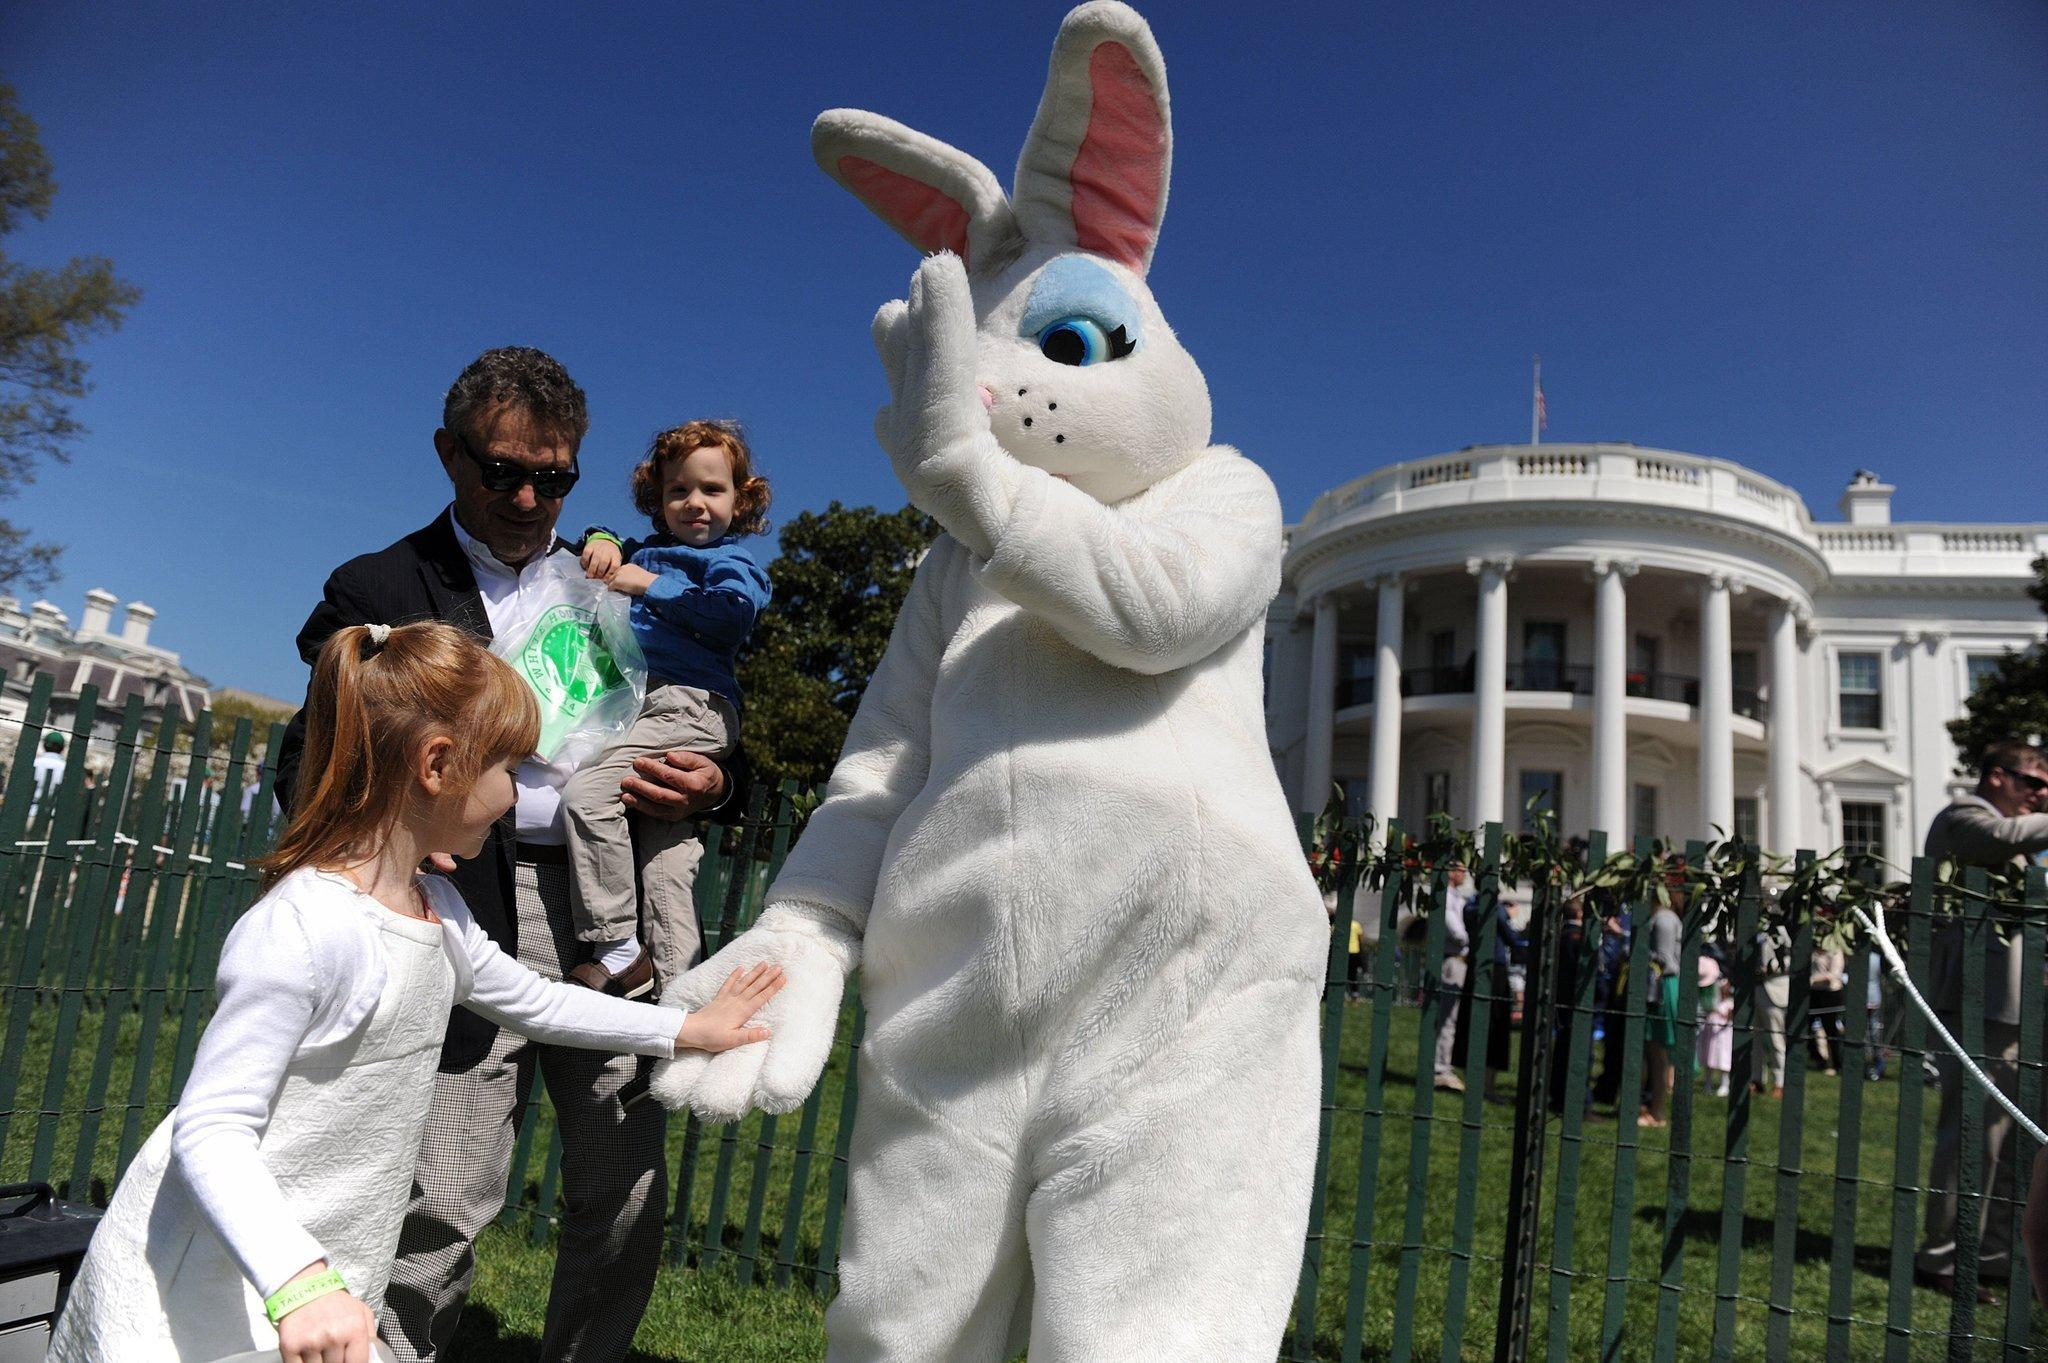 The Easter Bunny greets children during the annual White House Easter Egg Roll on the South Lawn of the White House.